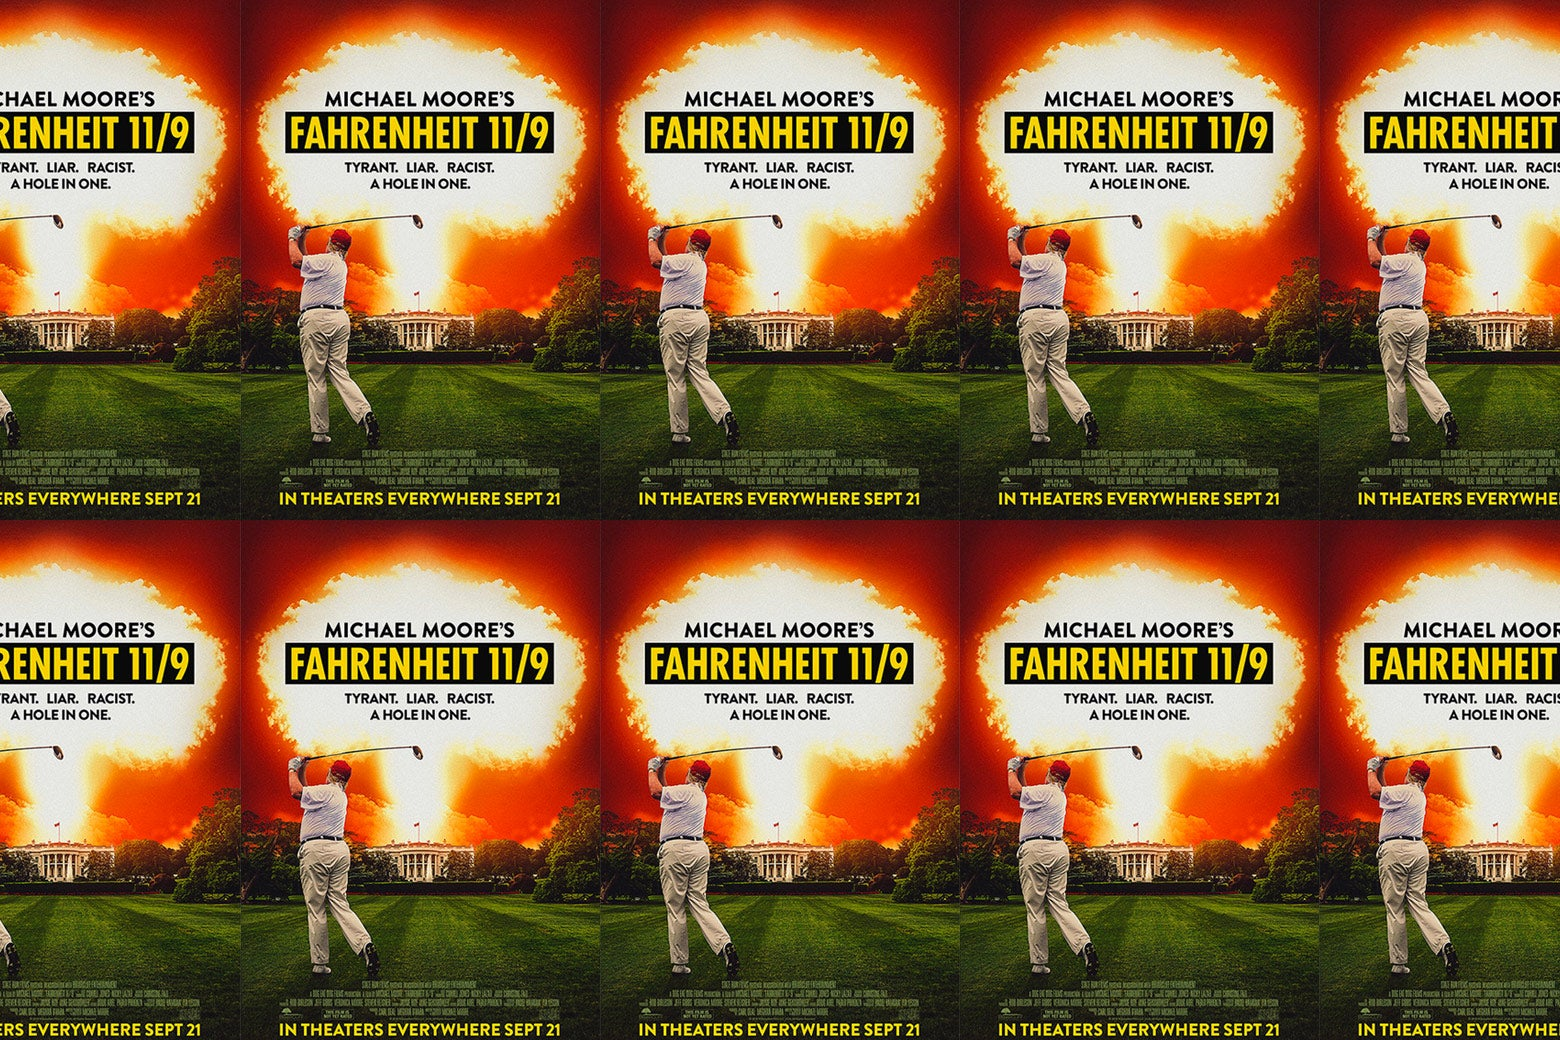 Fahrenheit 11/9 movie poster shown over and over.